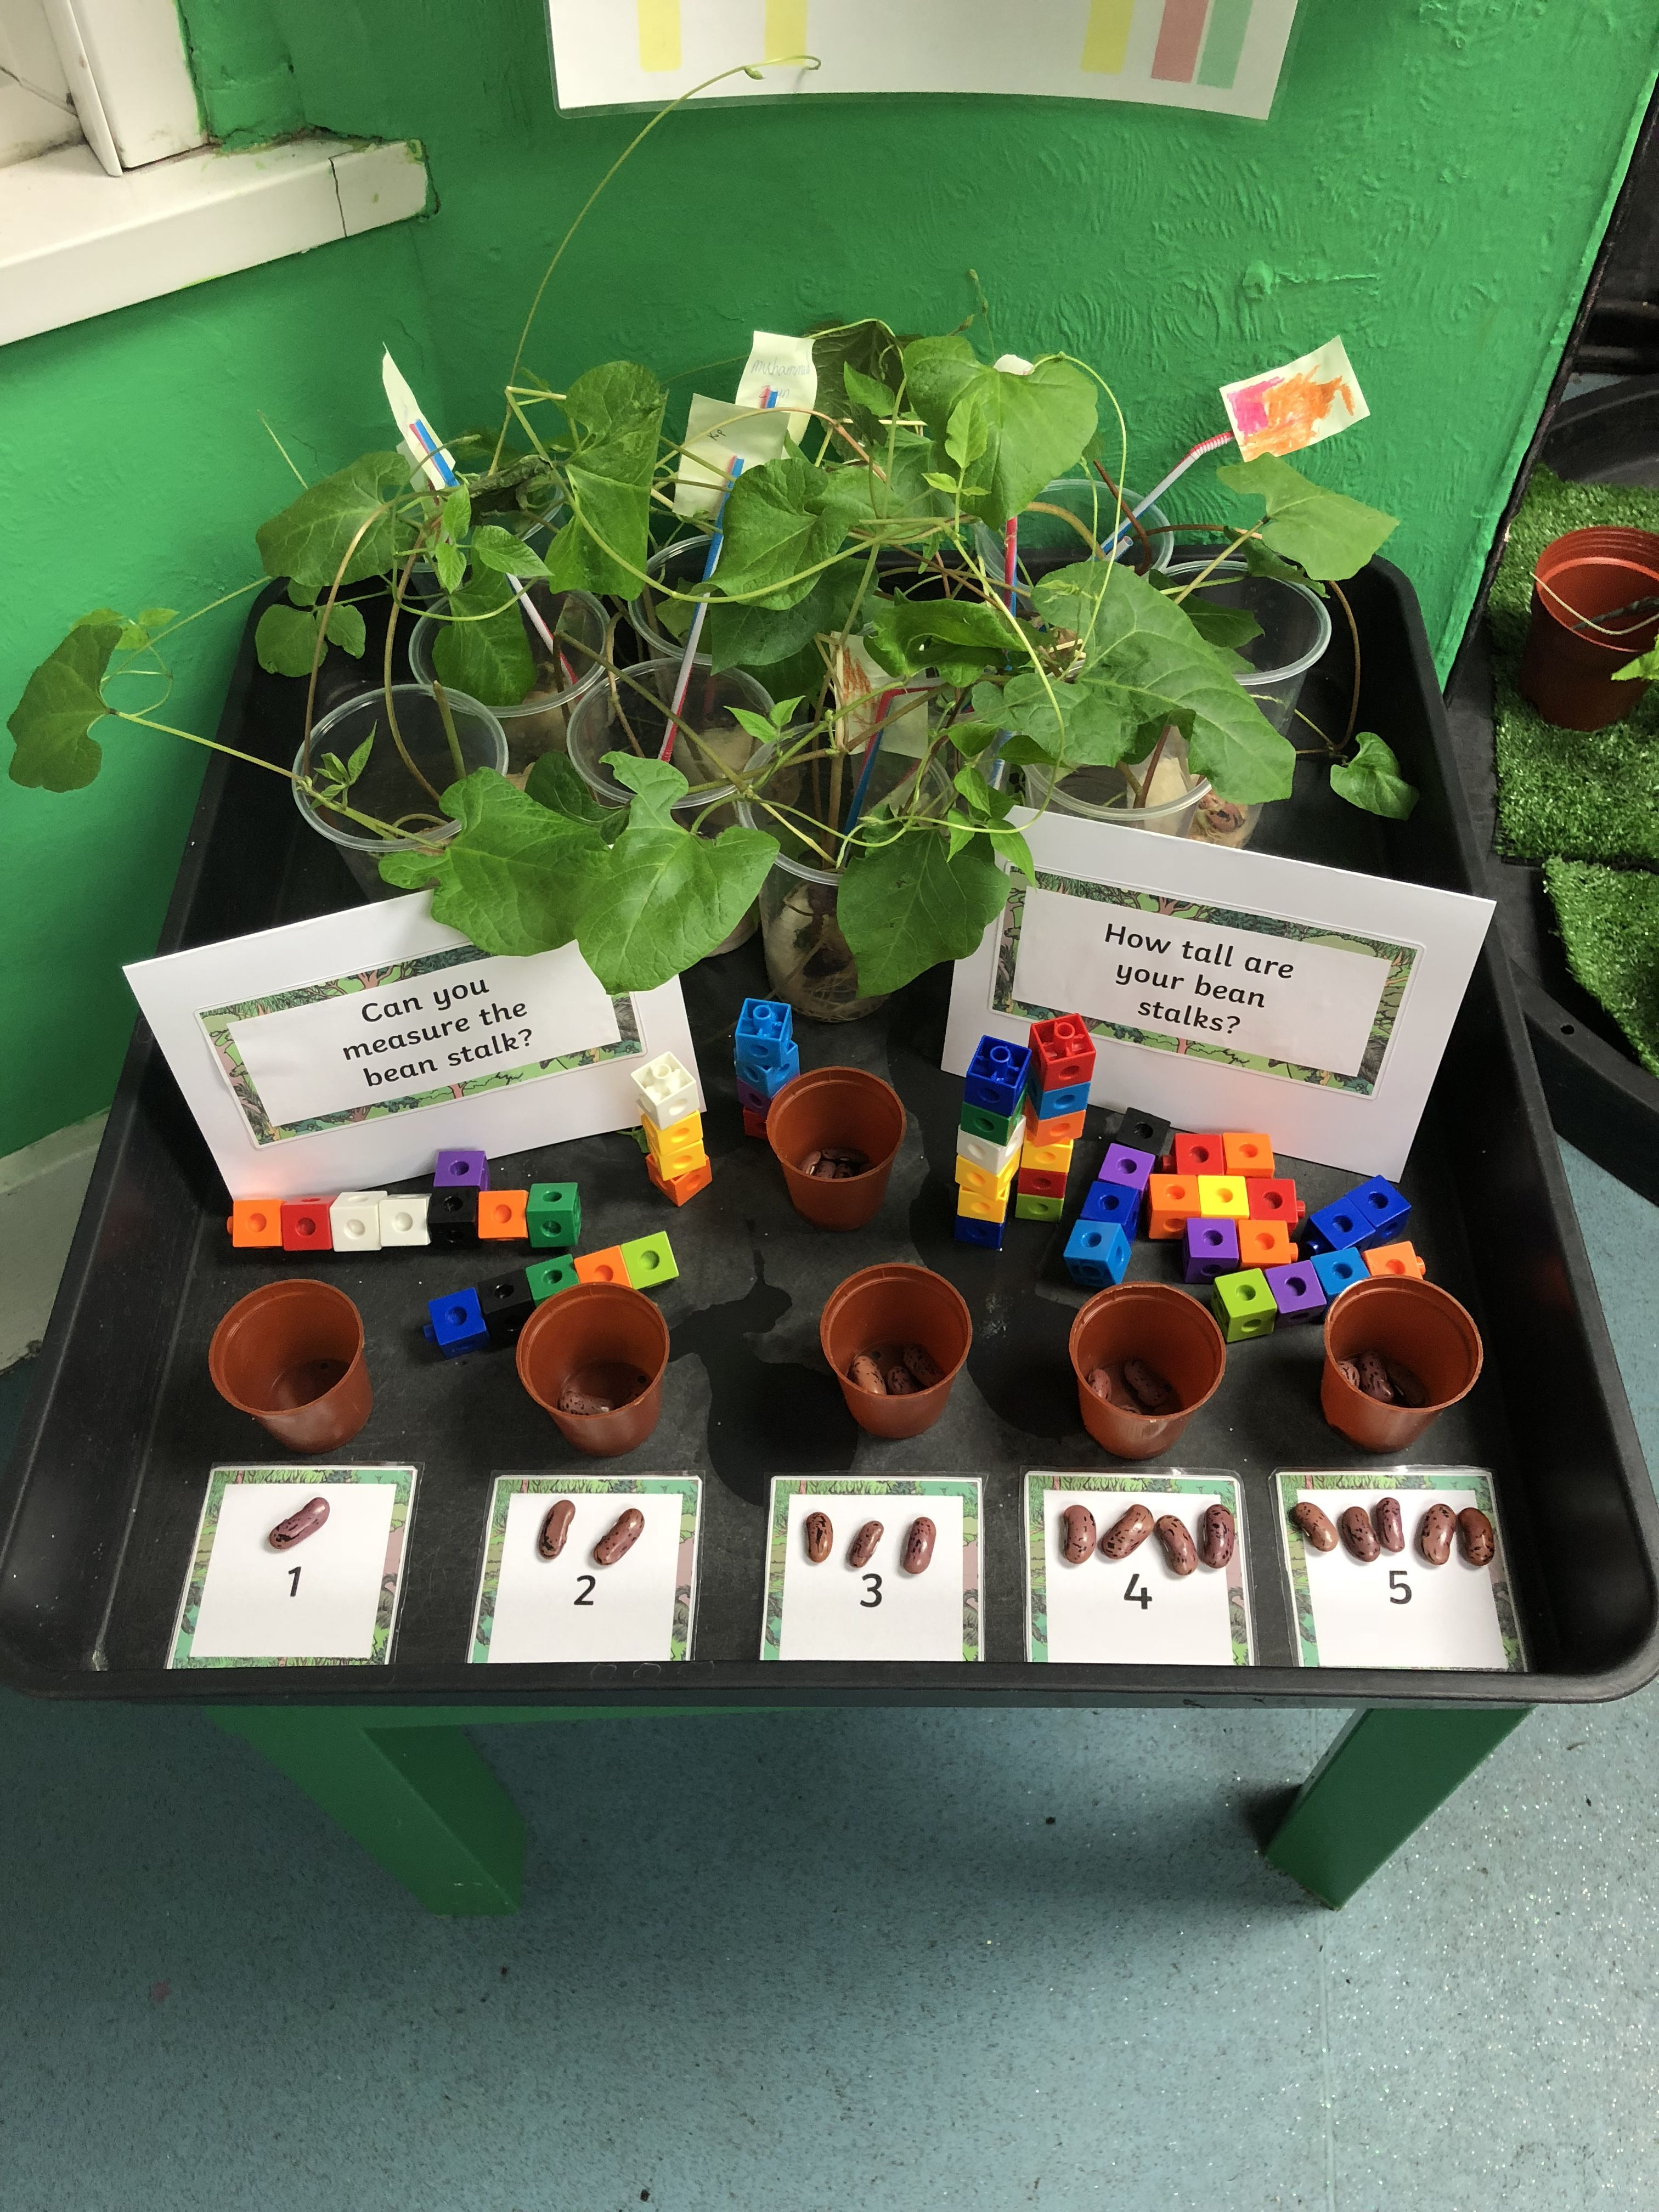 Maths Challenge Bean Stalks Counting Jack And The Bean